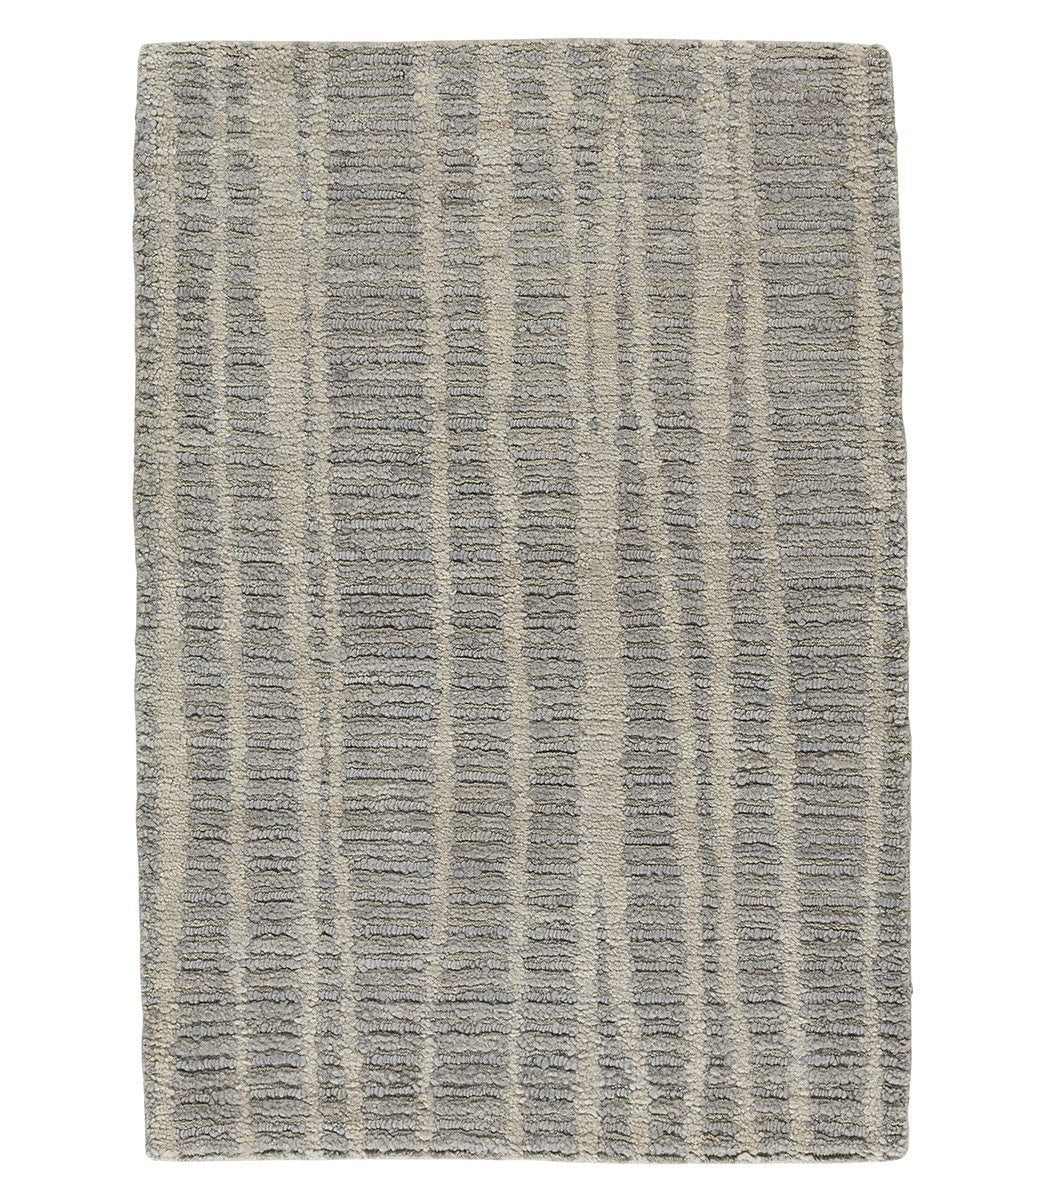 Rays II Light Grey, a hand knotted rug designed by Tufenkian Artisan Carpets.